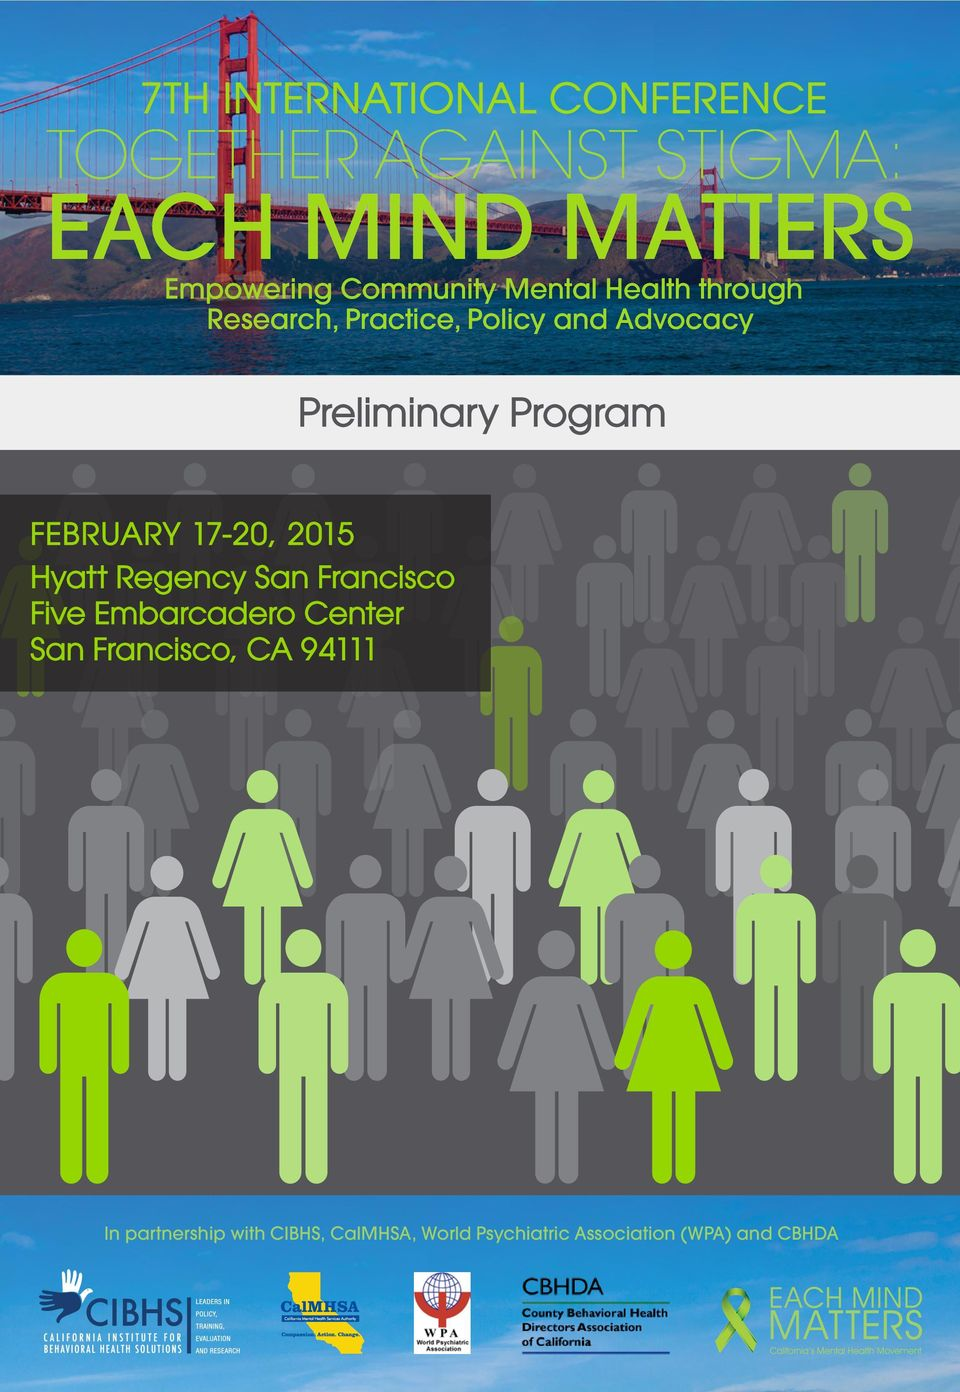 Program FEBRUARY 17-20, 2015 Hyatt Regency San Francisco Five Embarcadero Center San